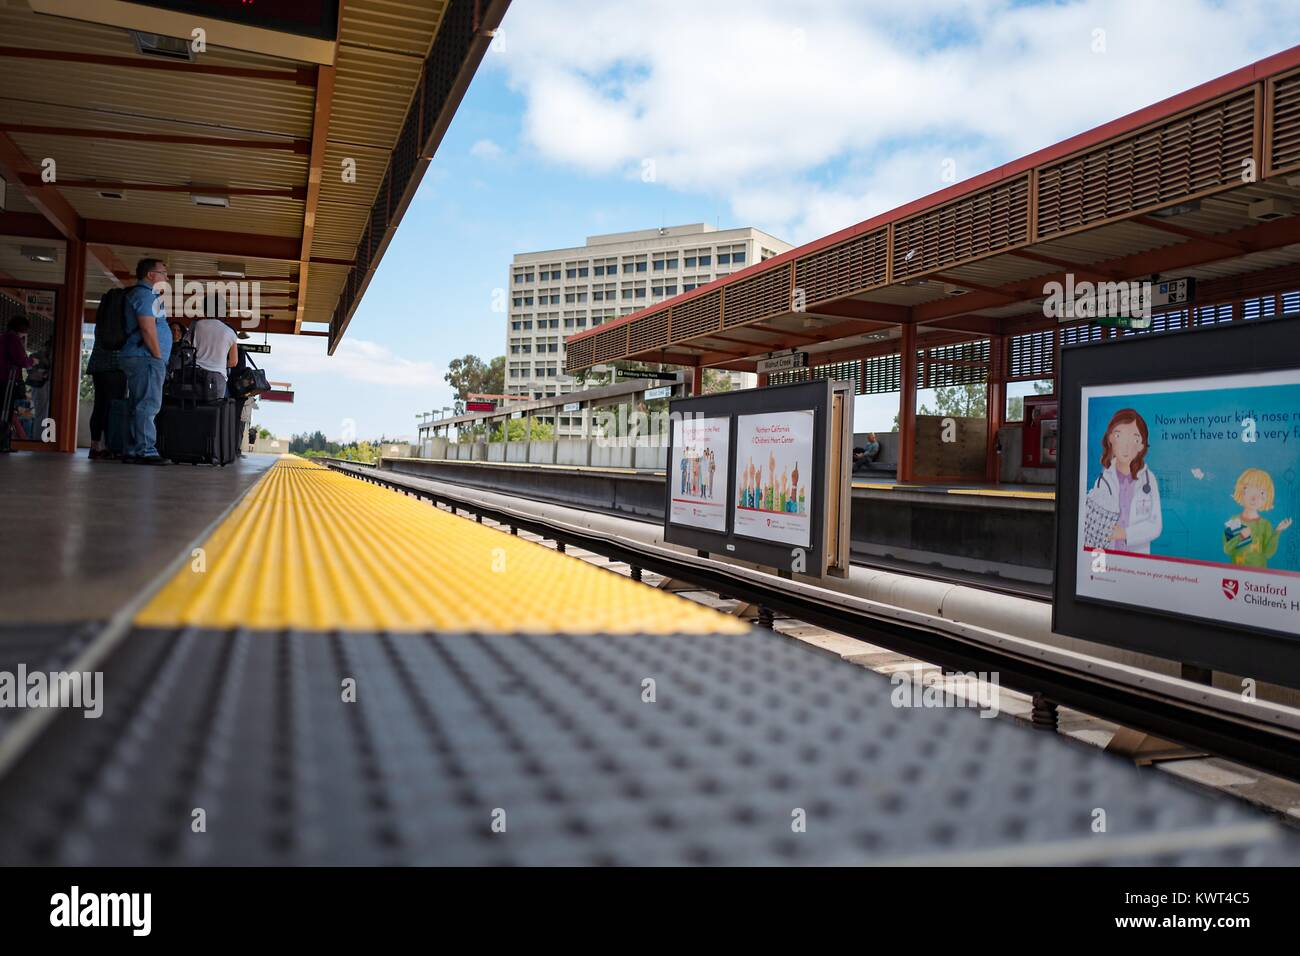 Low-angle view of passengers waiting for a train, seen from the edge of the platform, at the Walnut Creek, California - Stock Image